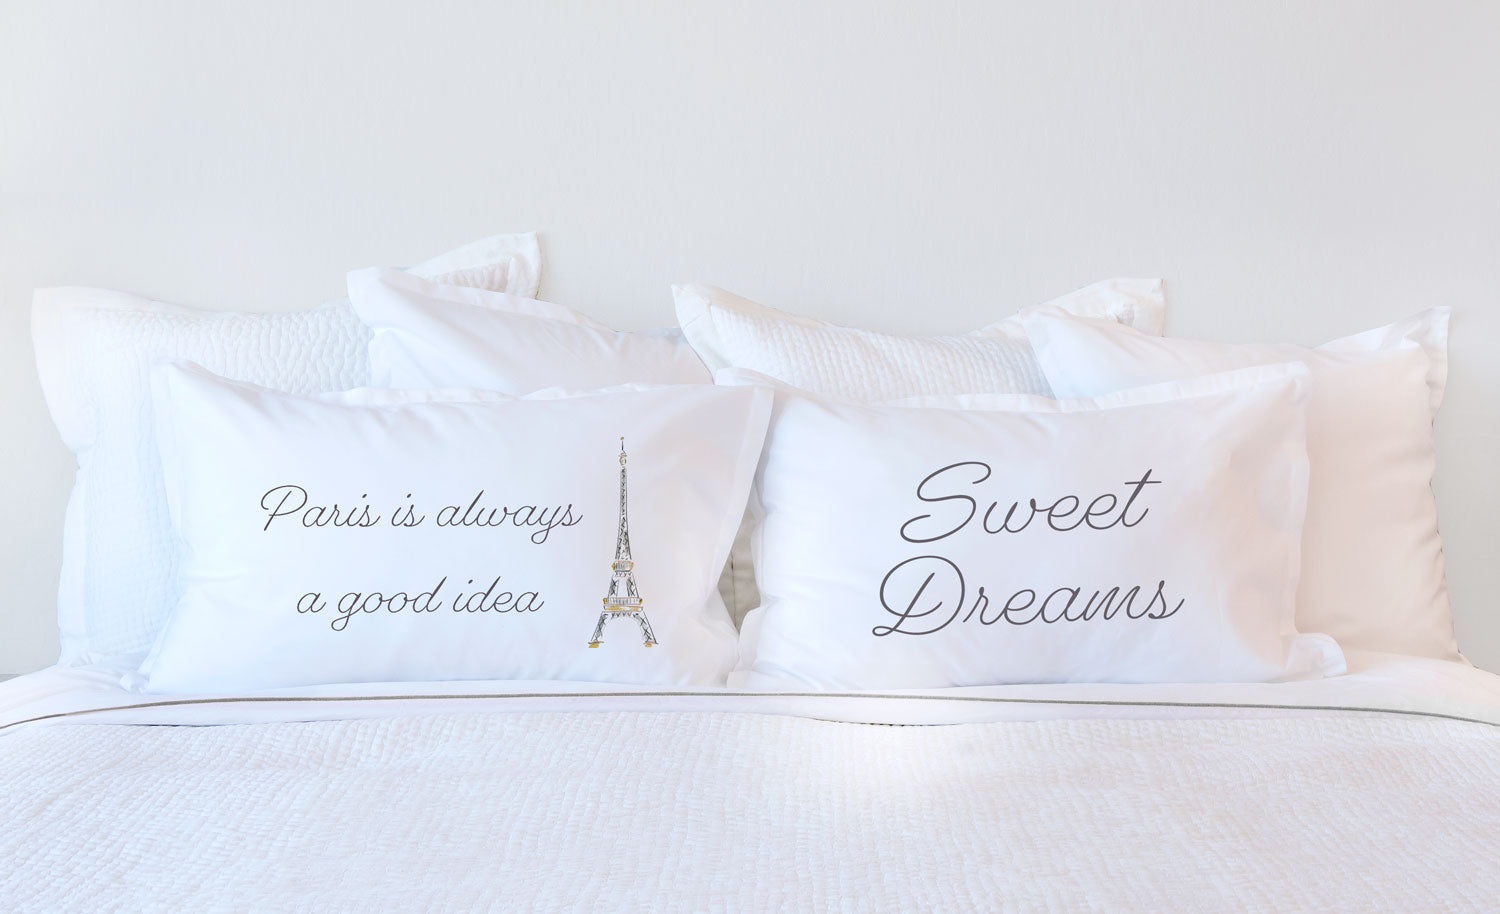 Paris Is Always A Good Idea - Inspirational Quotes Pillowcase Collection-Di Lewis